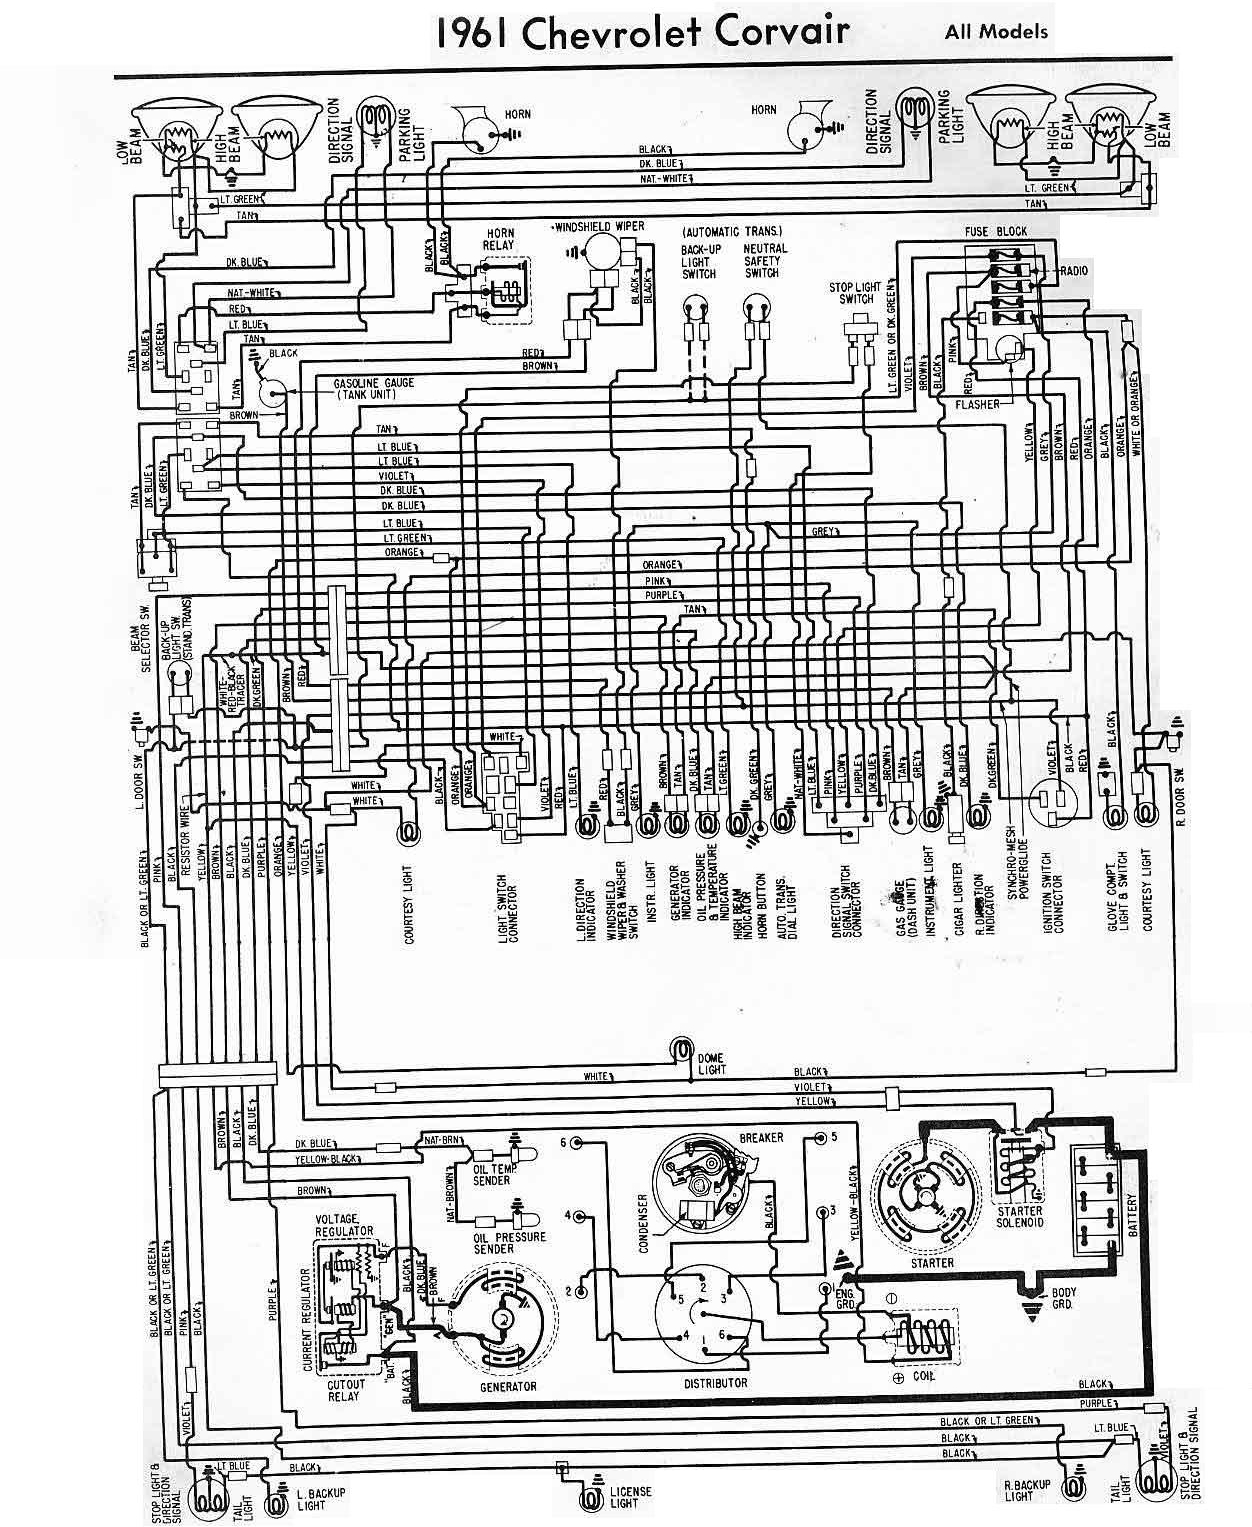 1961 corvair wiring diagram free wiring diagram for you u2022 corvair motor diagram corvair wiring diagram [ 1252 x 1527 Pixel ]